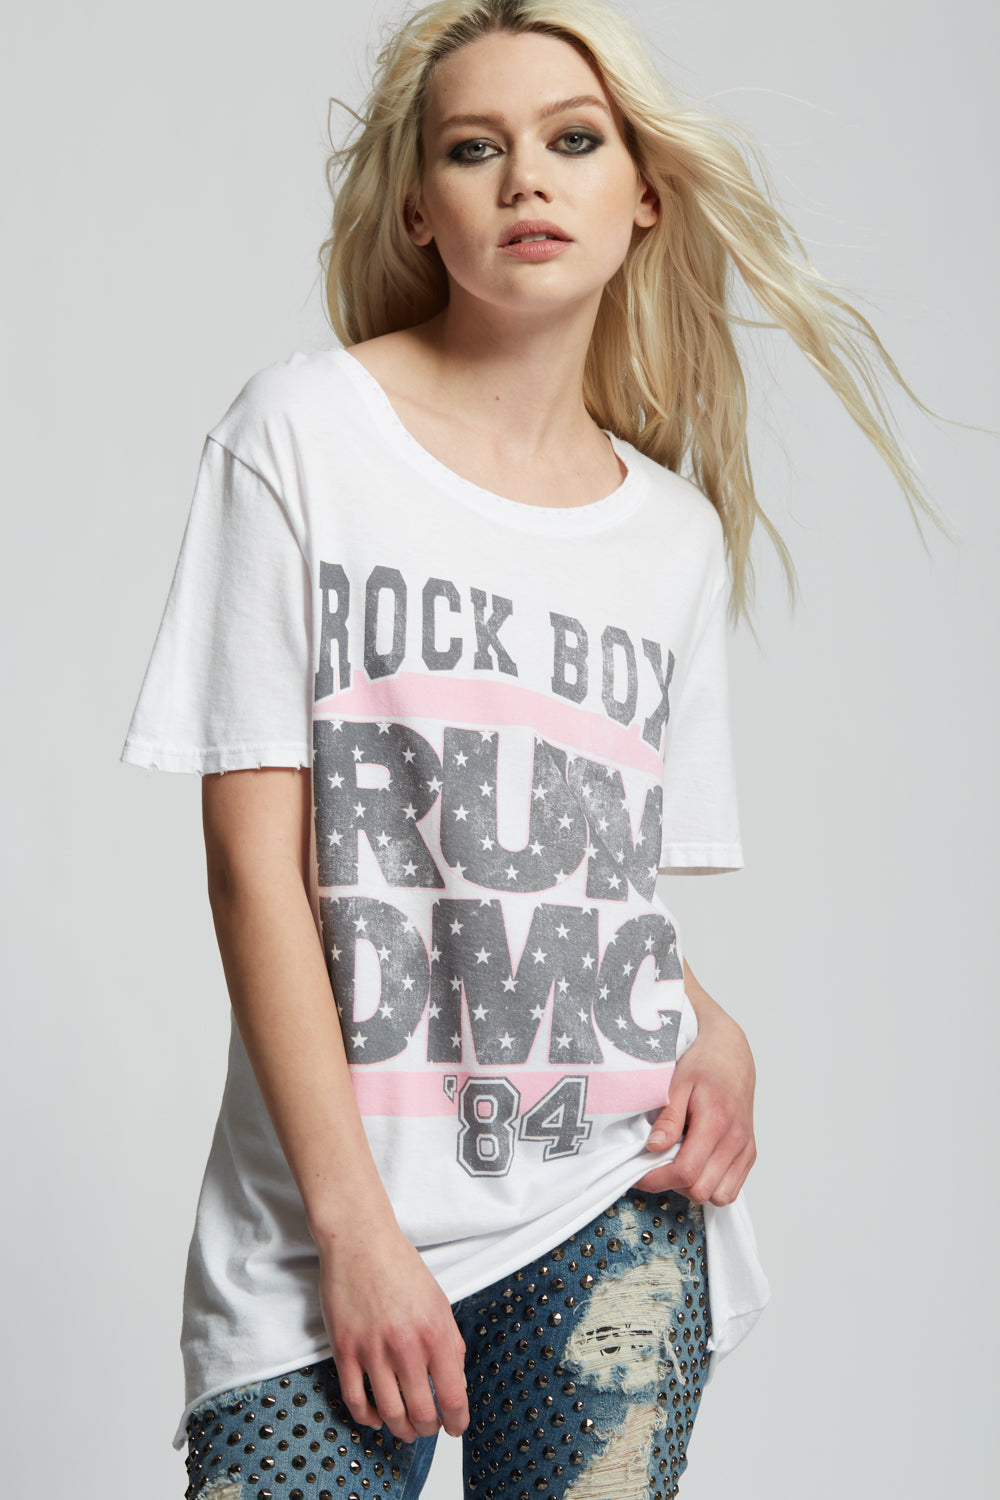 Run-DMC Rock Box '84 Tee